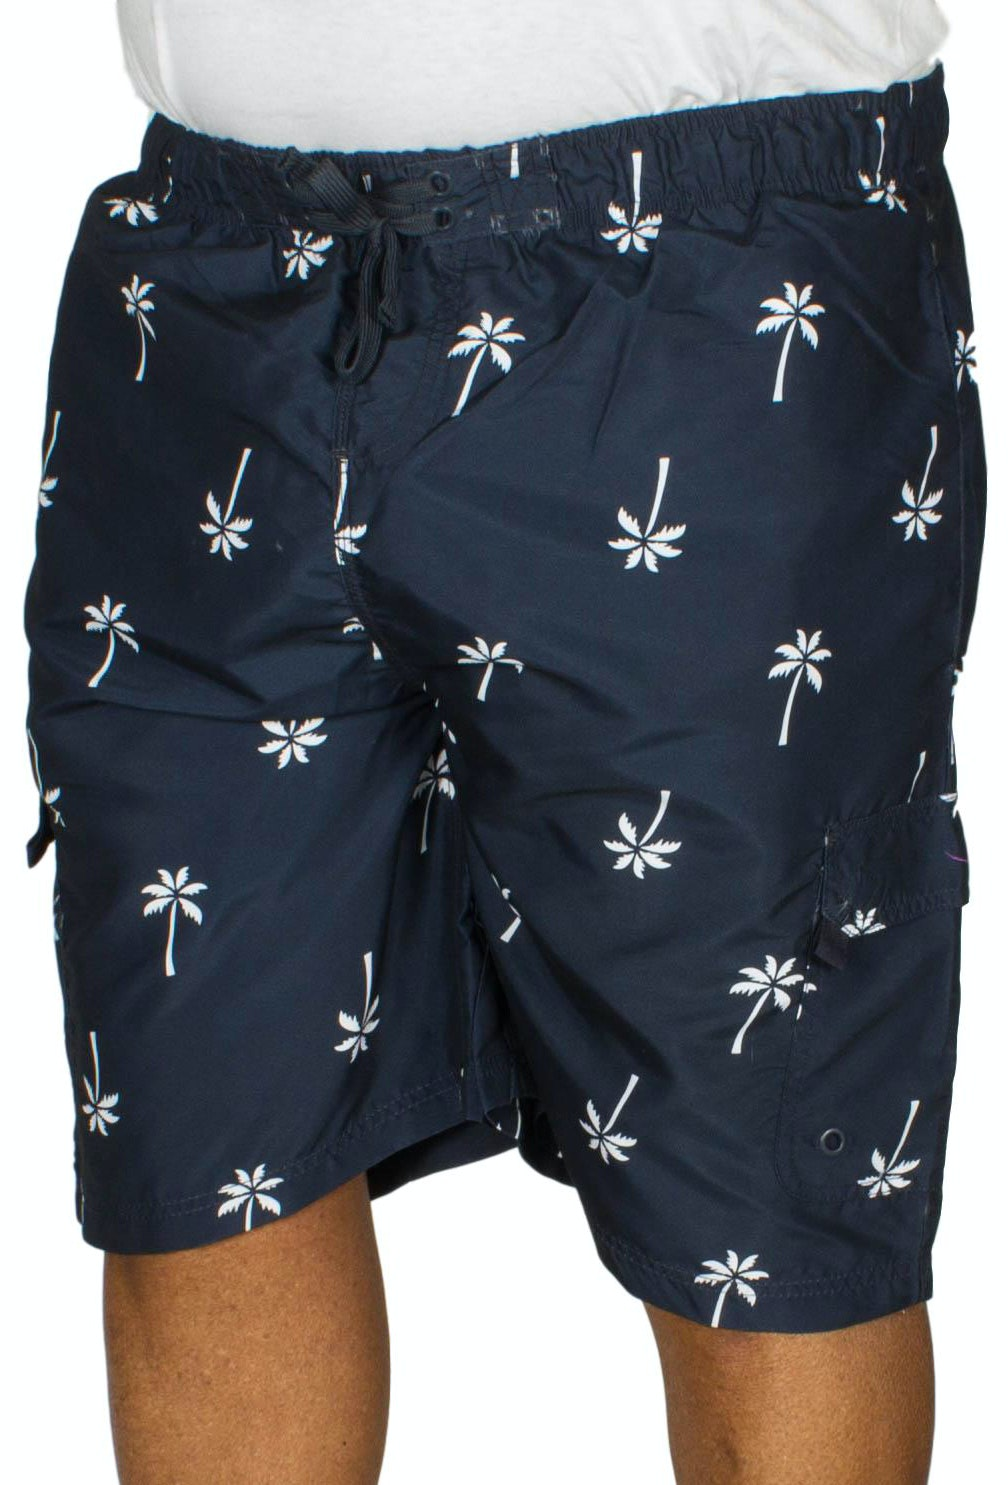 KAM Palm Tree Print Swim Shorts Navy